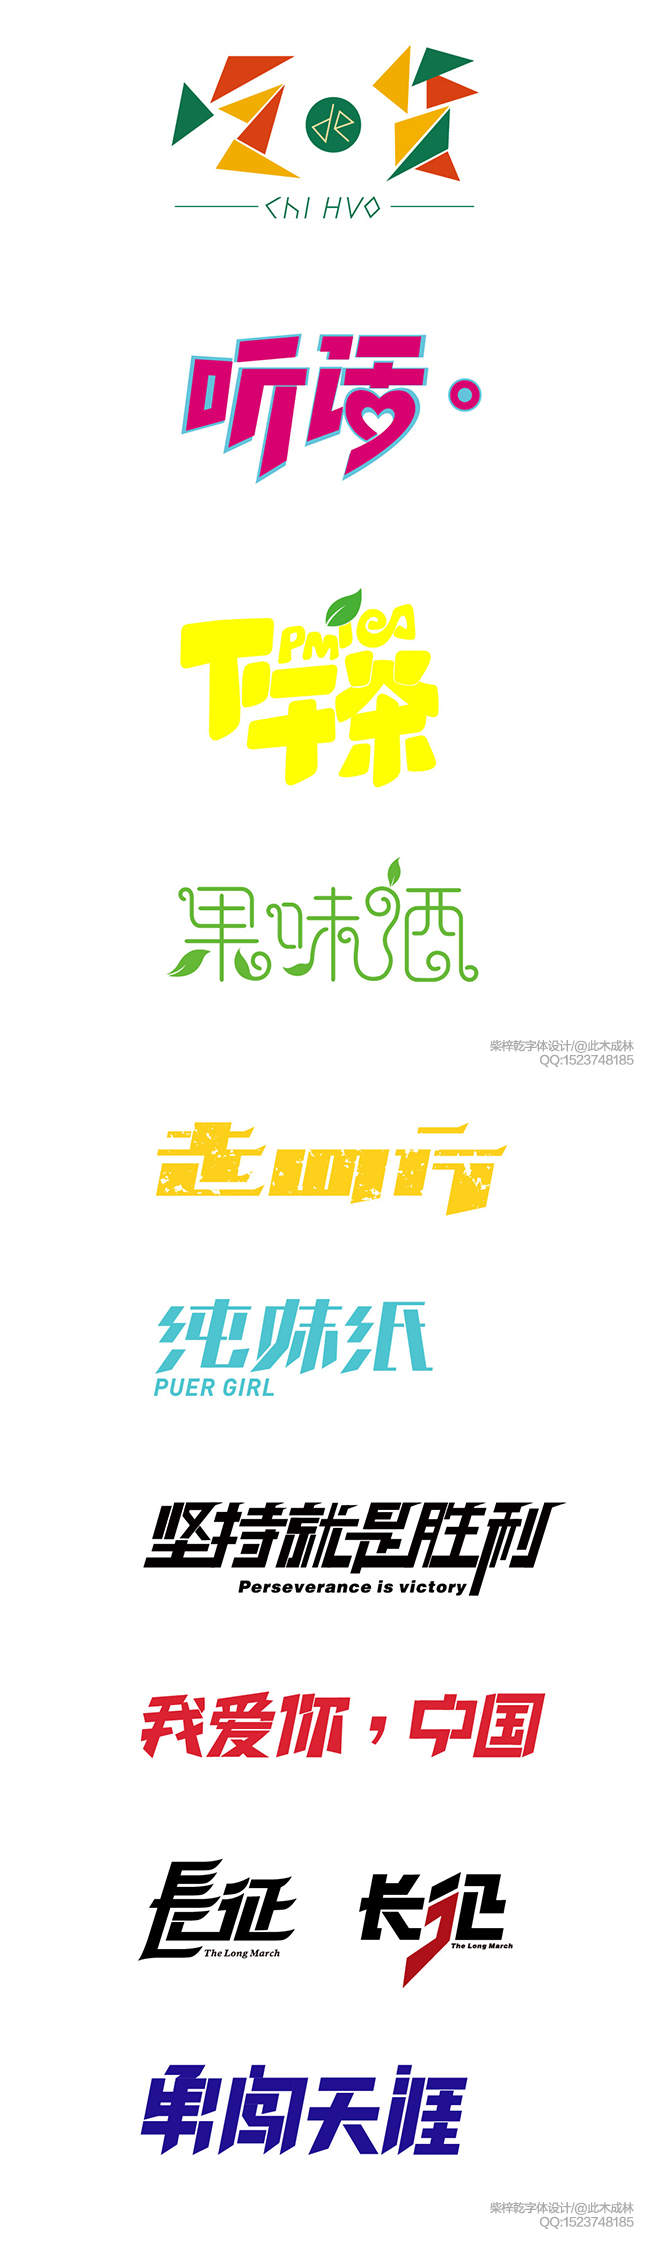 chinesefontdesign.com 2016 07 18 19 51 18 88 Chinese Font Logo Designs: Brew Your Best Identity